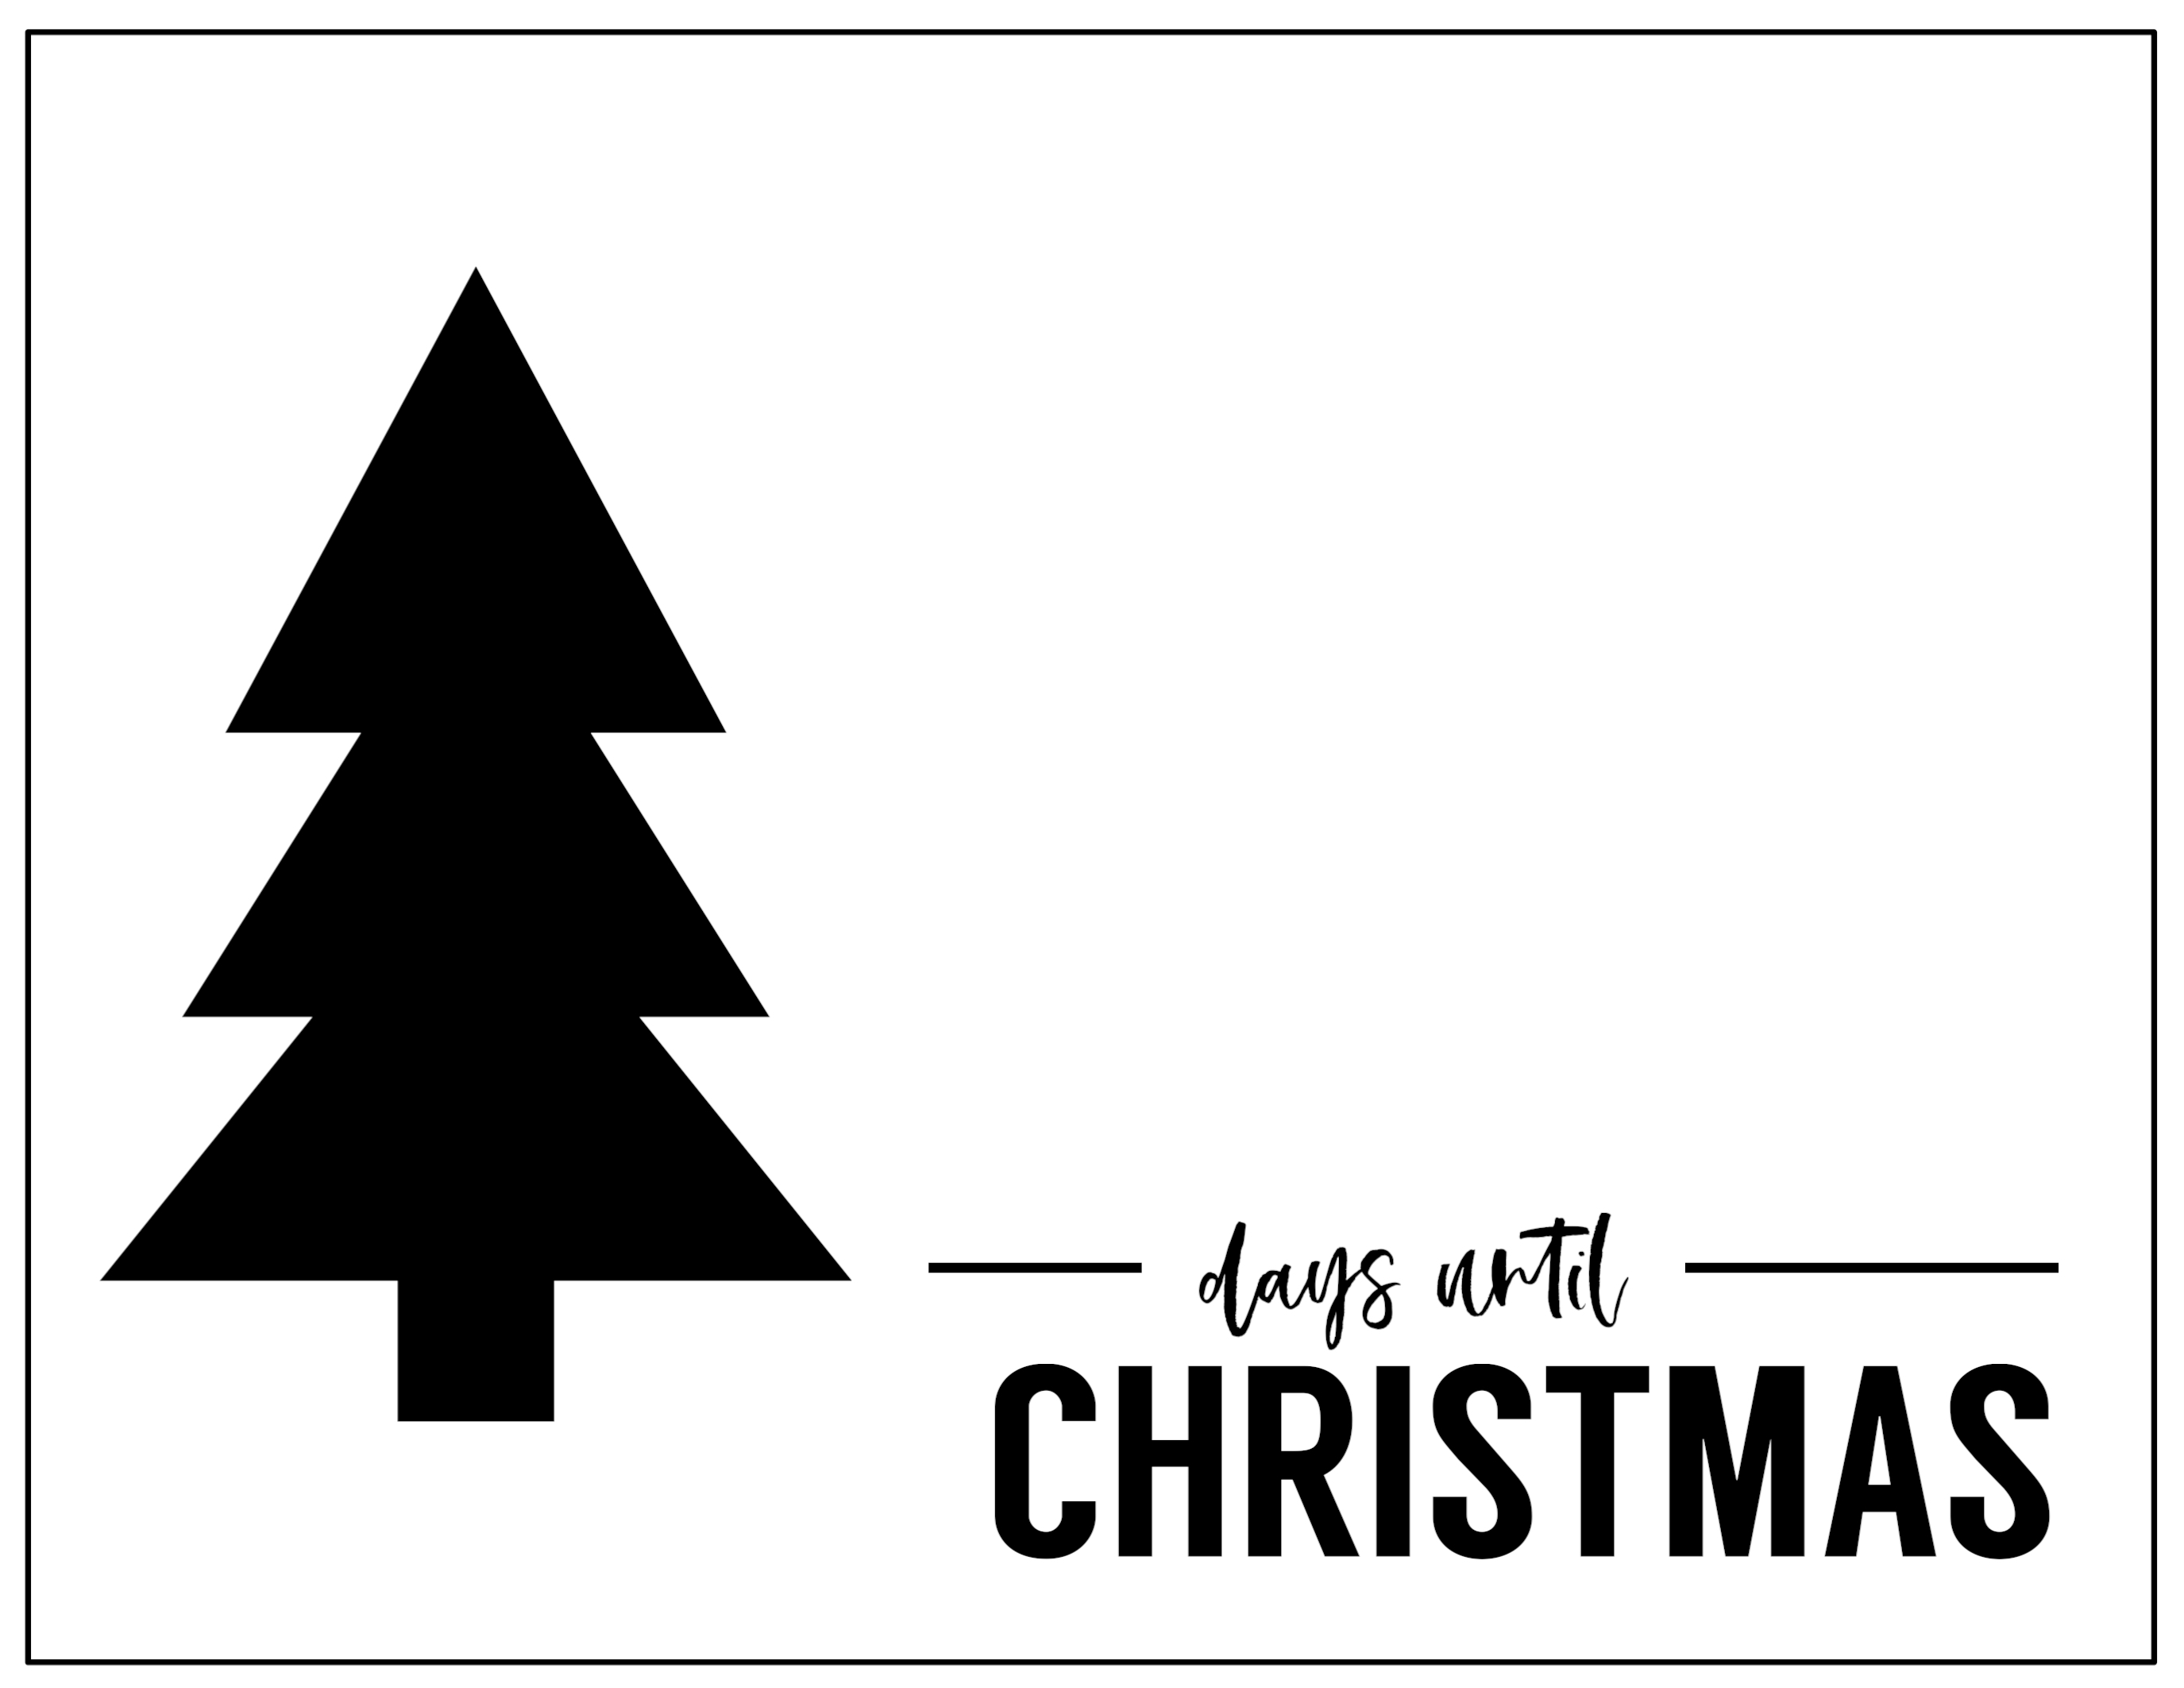 Free Printable Days Until Christmas Countdown - Paper Trail Design